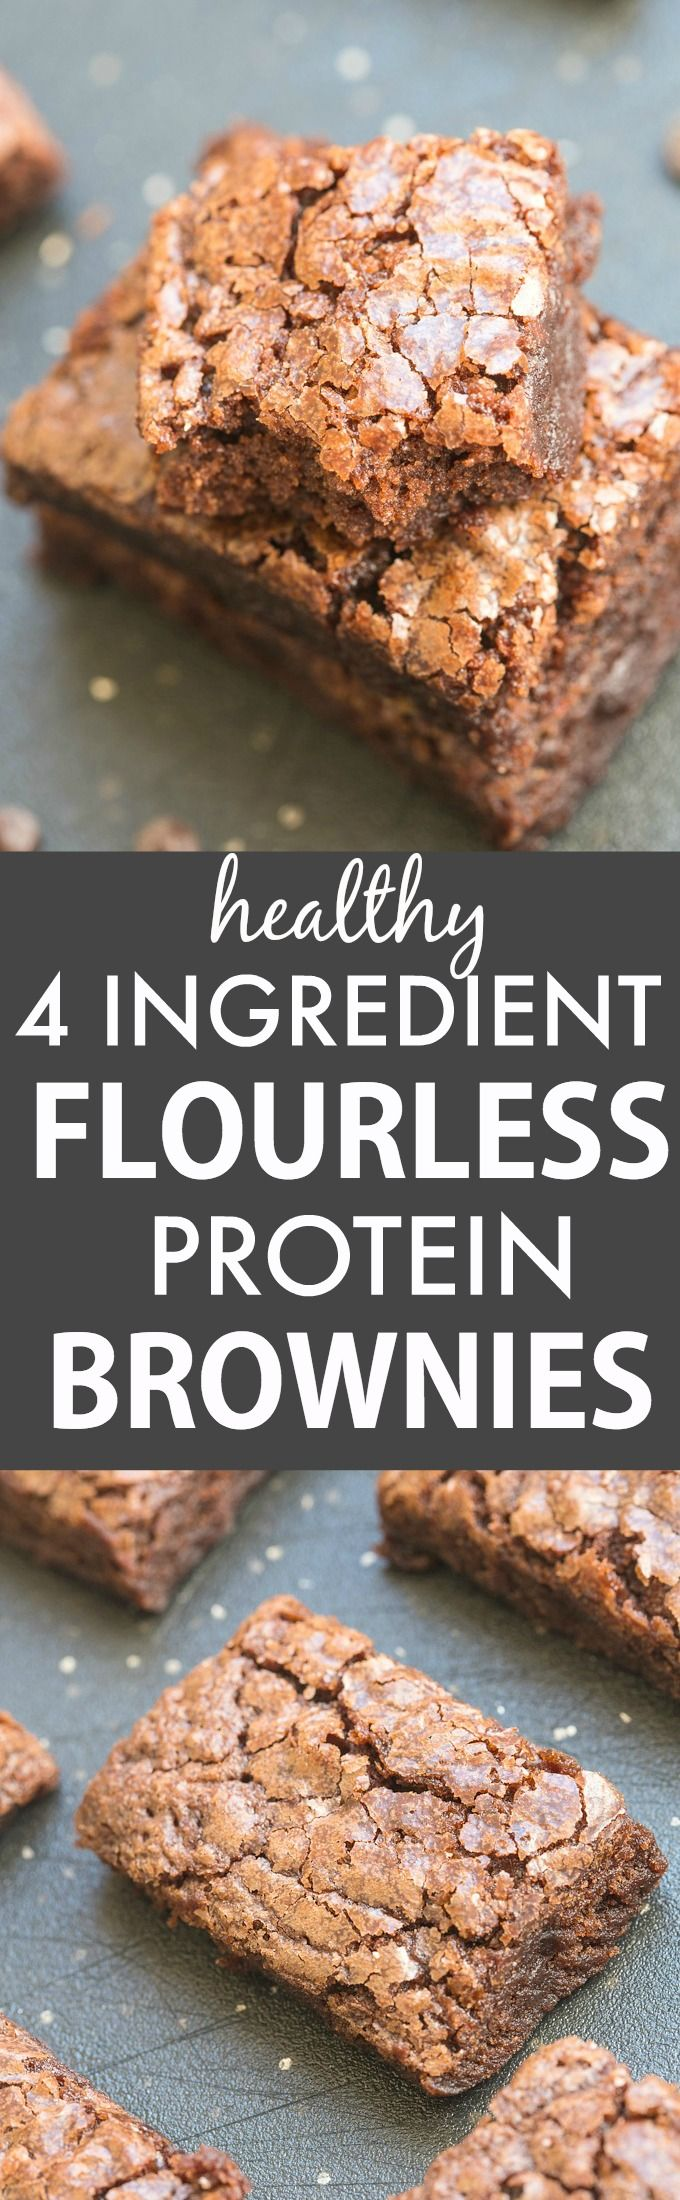 4-Ingredient Flourless Protein Brownies (V, GF, P, DF)- Gooey, fudgy and guilt-free brownies made with NO butter, NO oil, NO flour and NO grains- Seriously easy and fool-proof! {vegan, gluten free, paleo recipe}- thebigmansworld.com